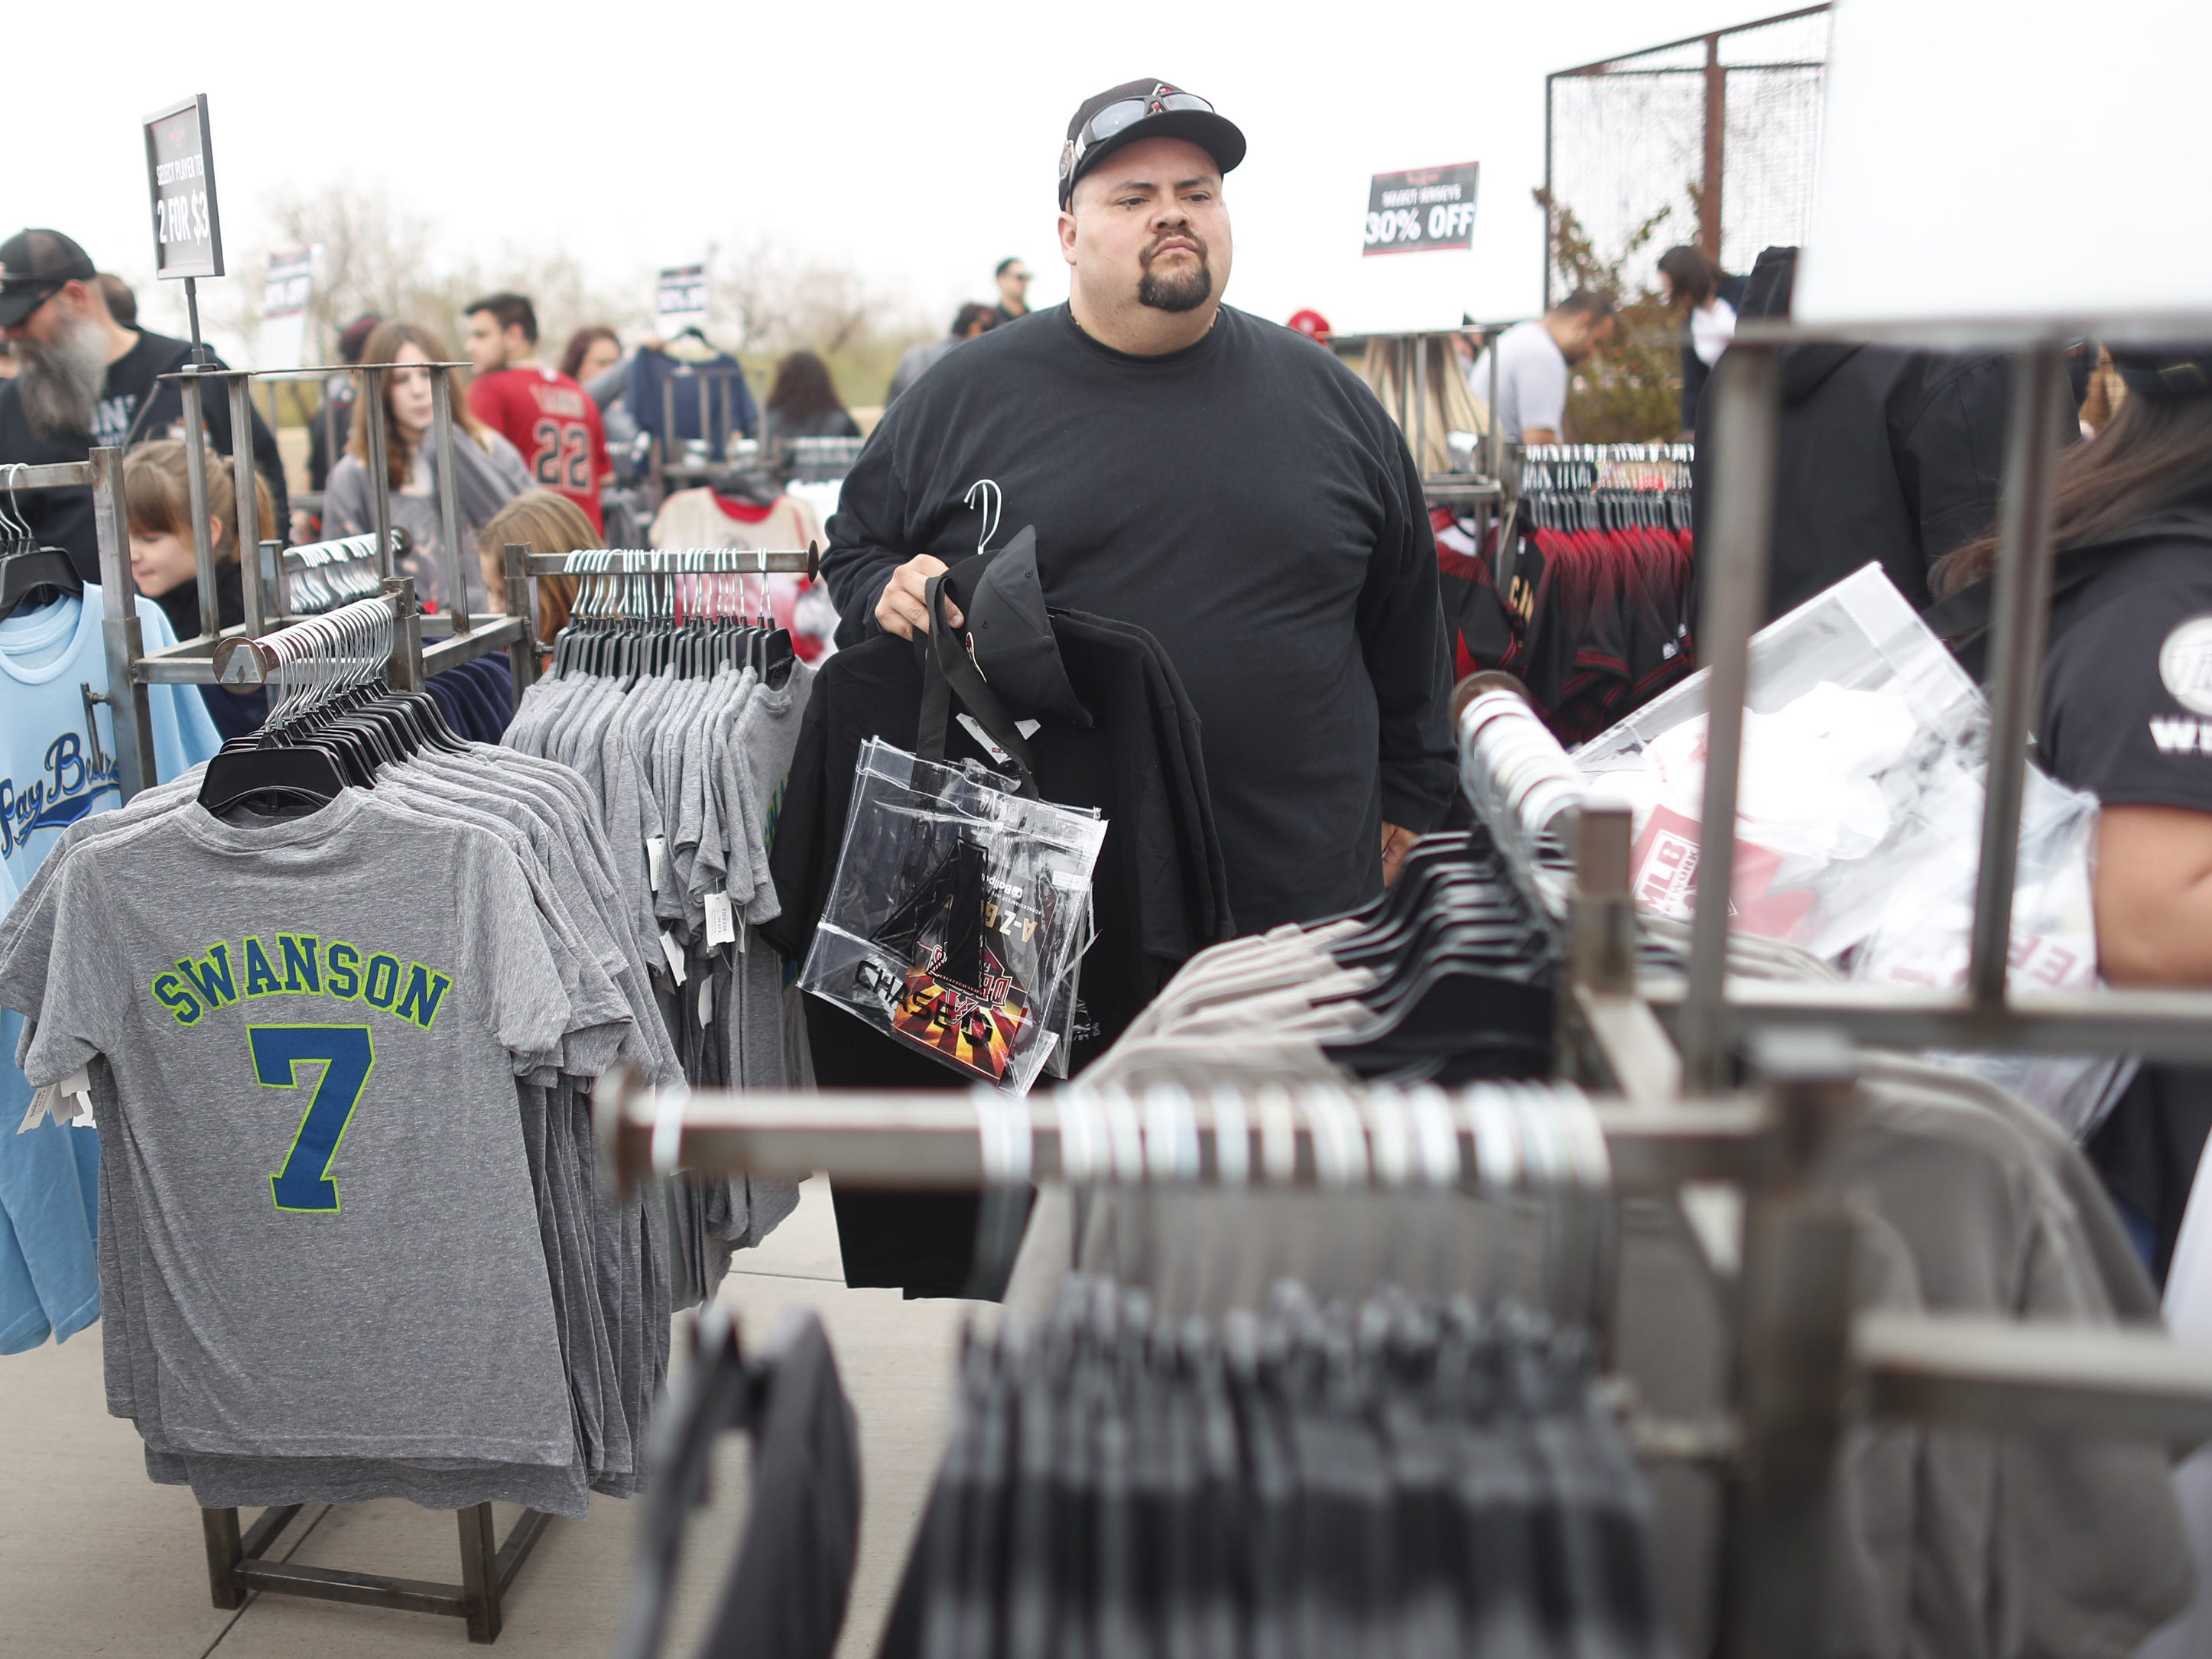 Fans look through the discount merchandise during the Diamondbacks Fan Fest at Salt River at Talking Sticks on February 9, 2019.